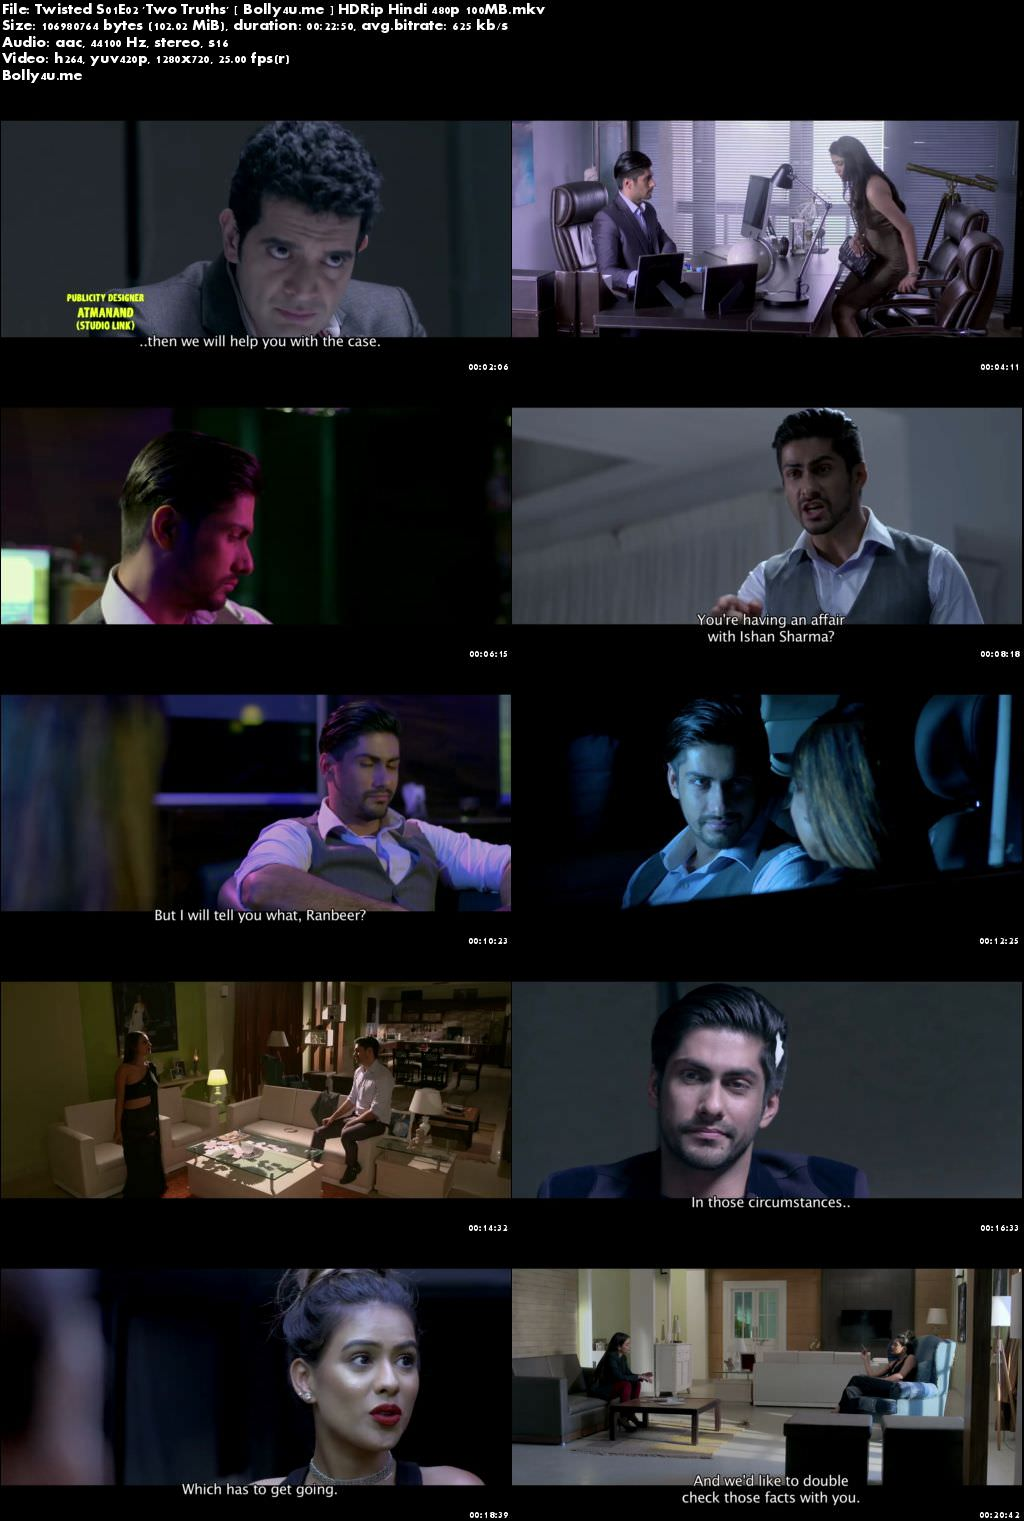 Twisted S01E02 Two Truths WEBRip 100MB Hindi 720p ESub Download